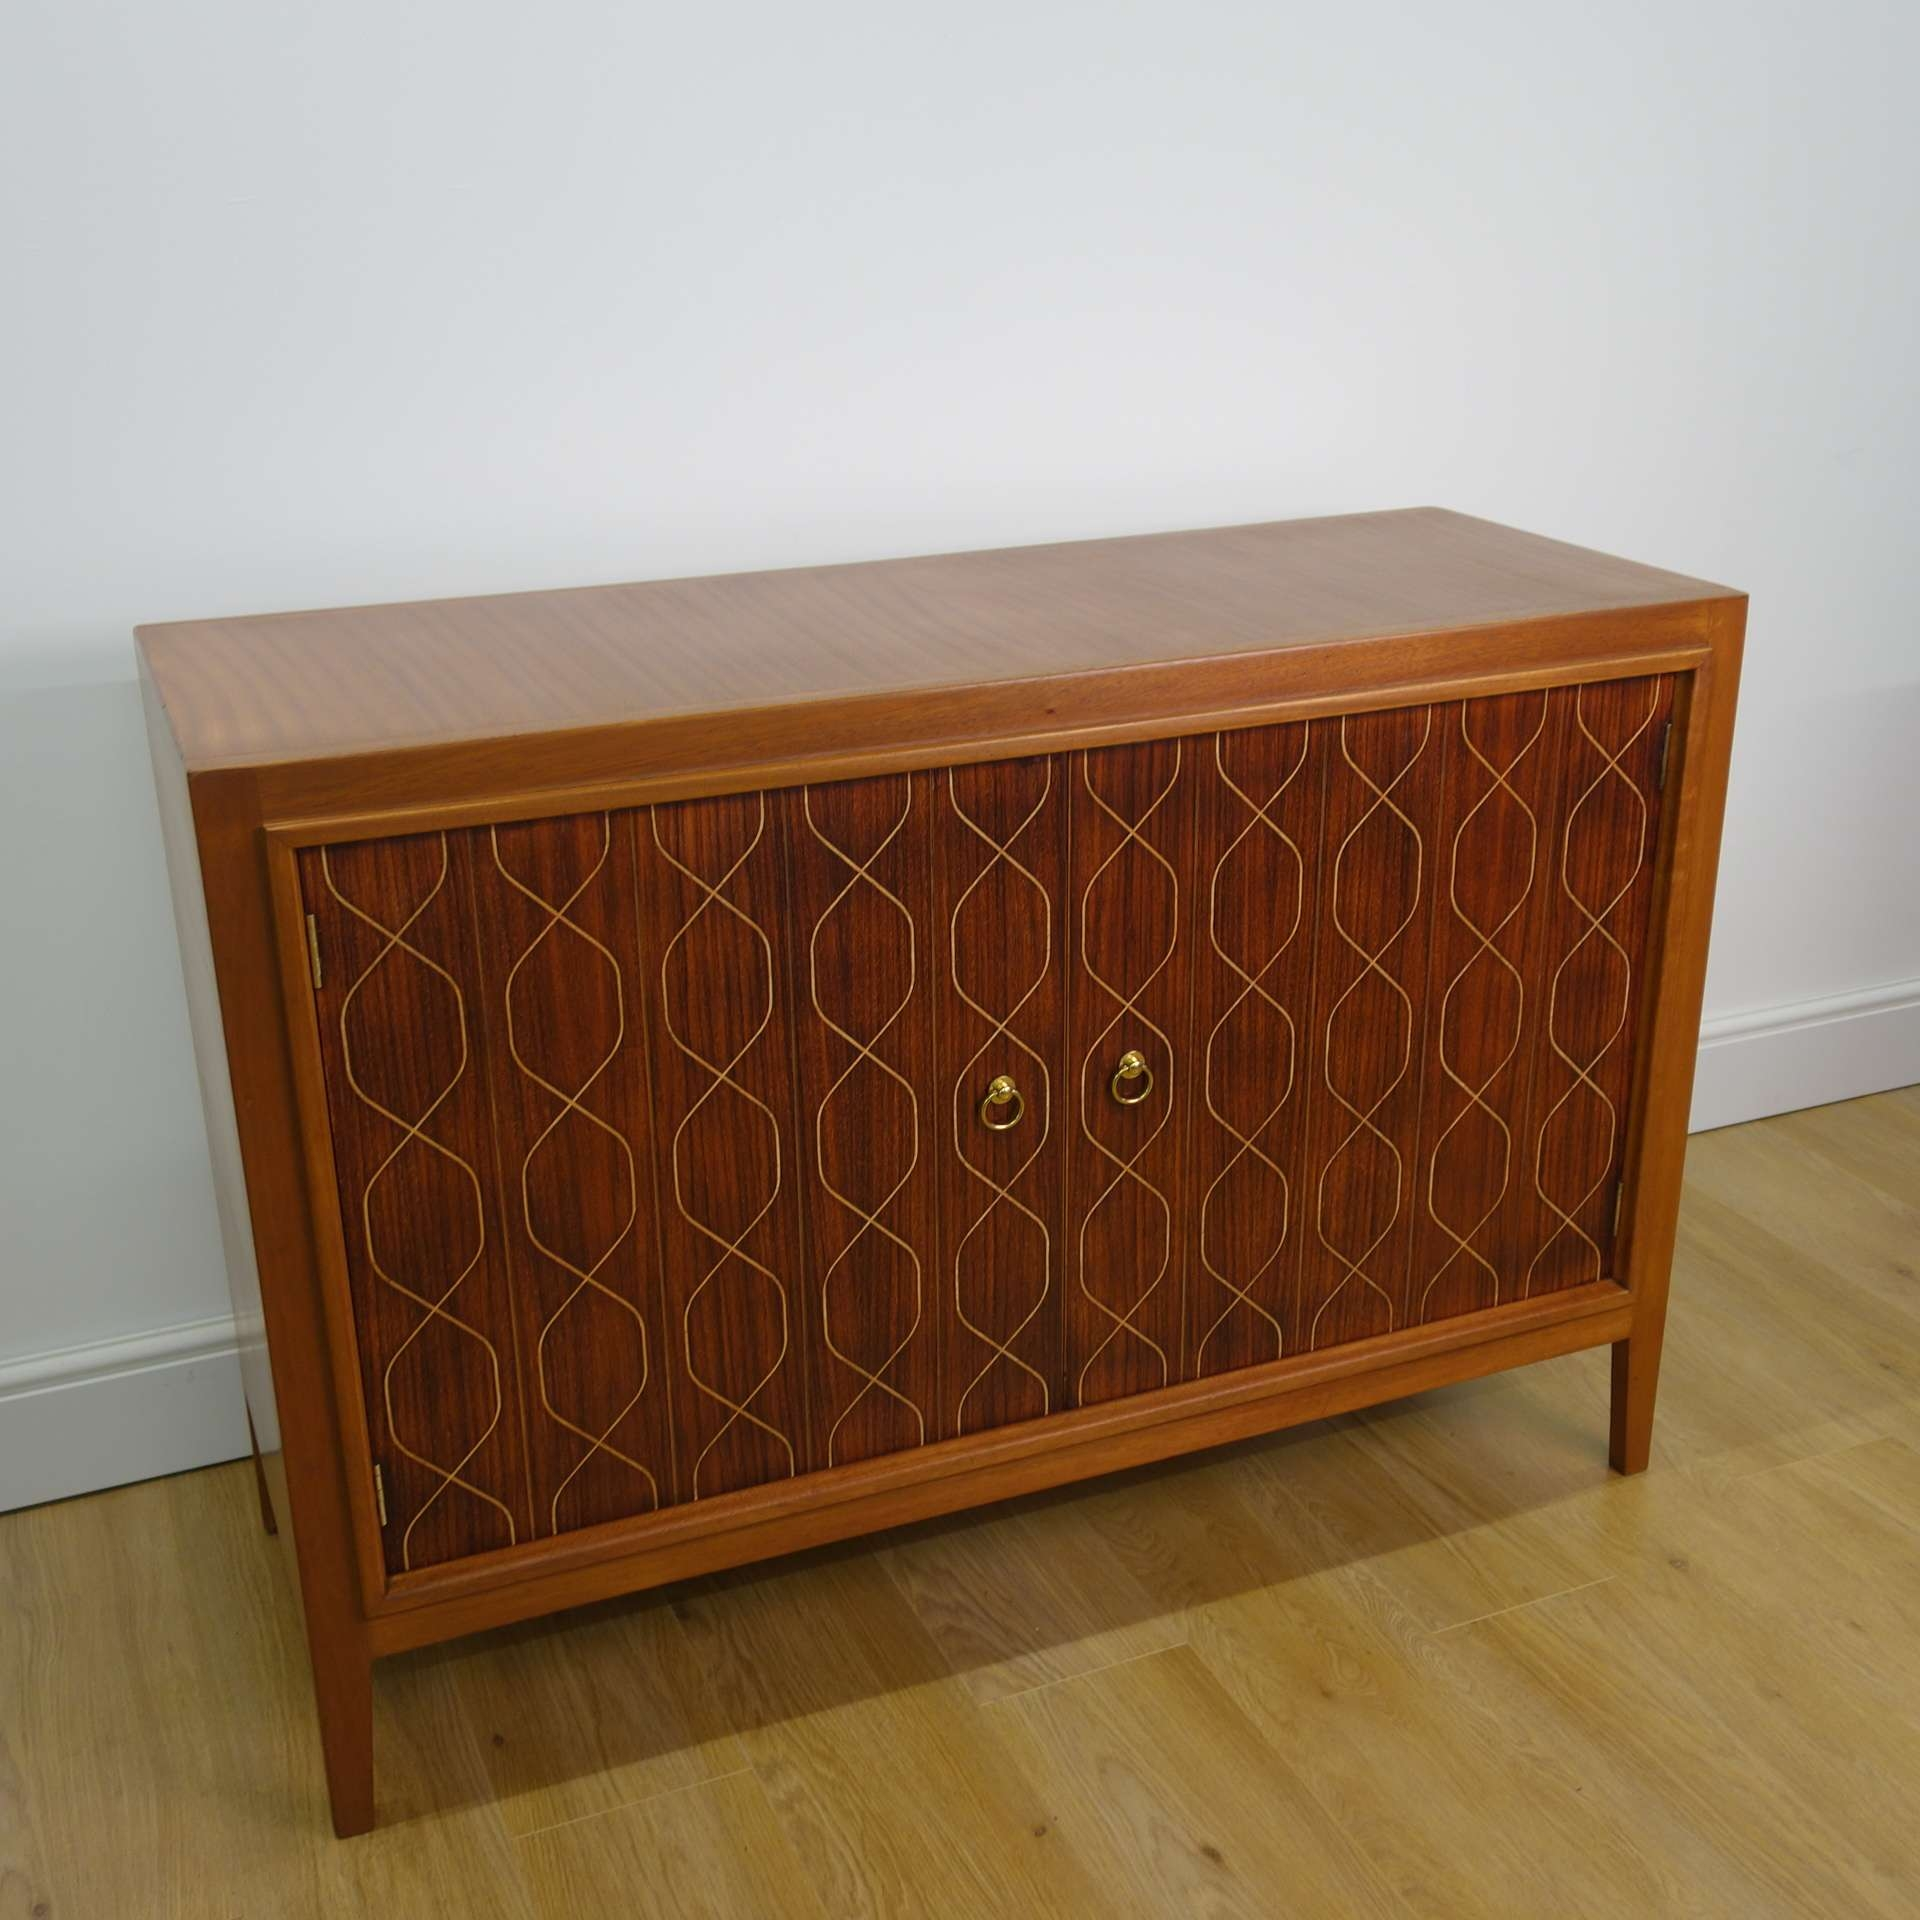 Double Helix Sideboardgordon Russell – Mark Parrish Mid Regarding Gordon Russell Helix Sideboards (View 5 of 20)